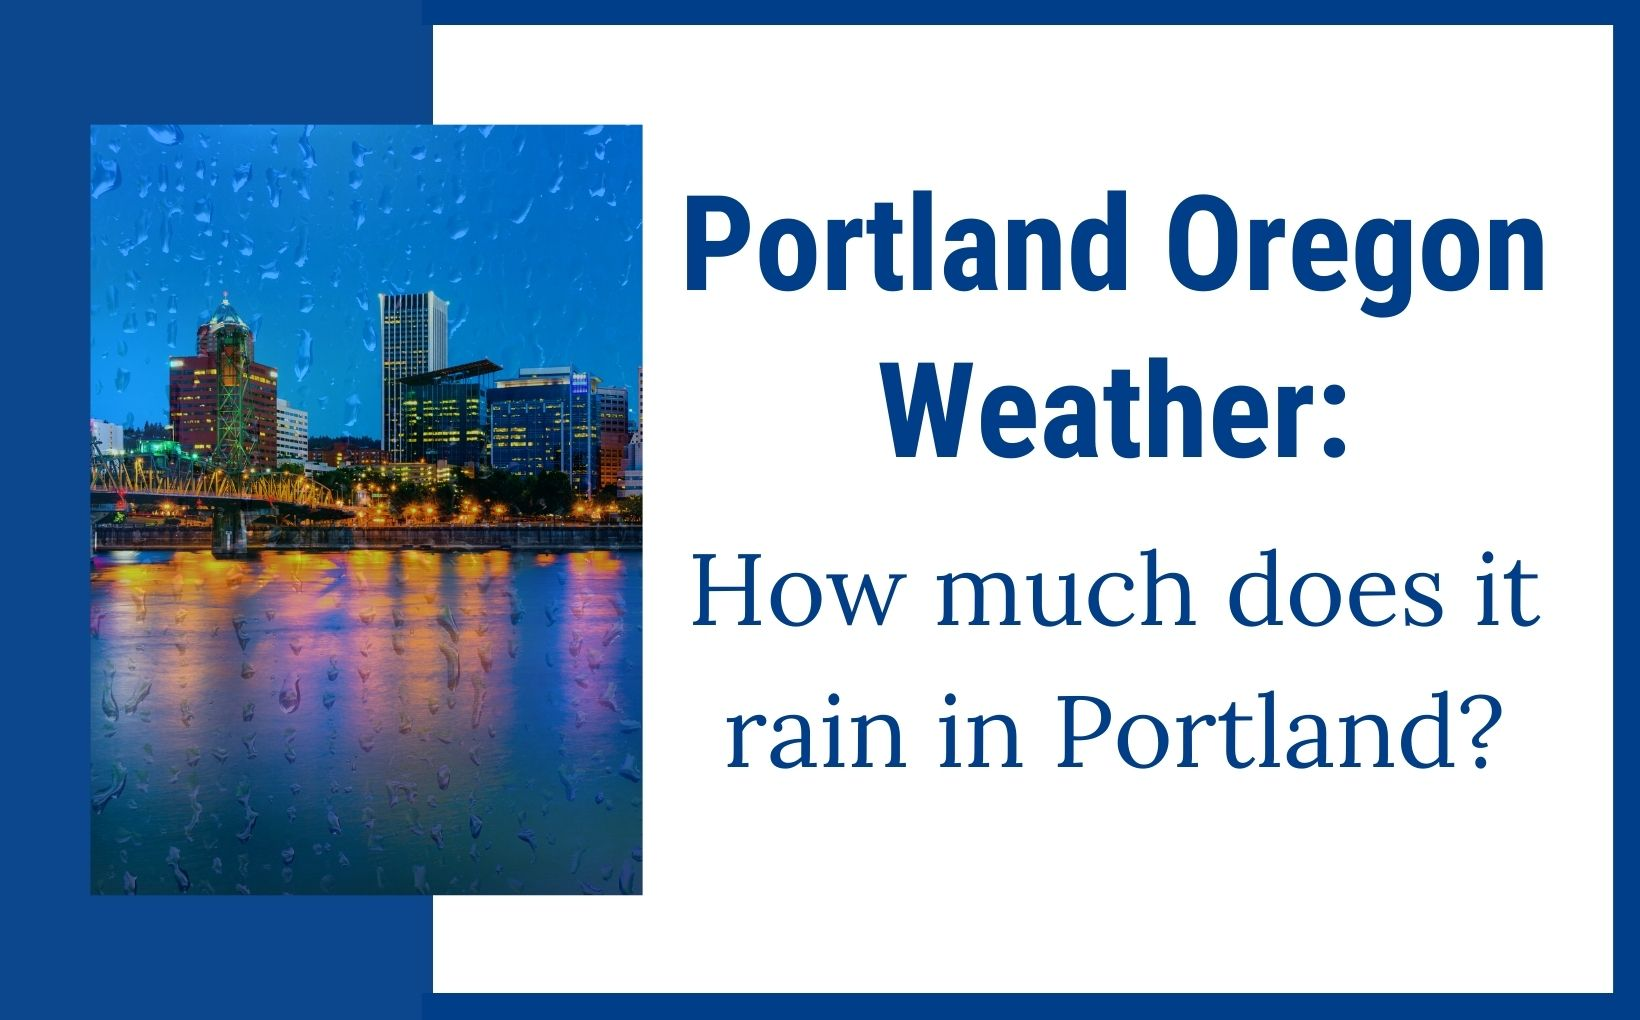 Portland Oregon Weather, how much does it rain in Portland, Living in Portland Real estate agents